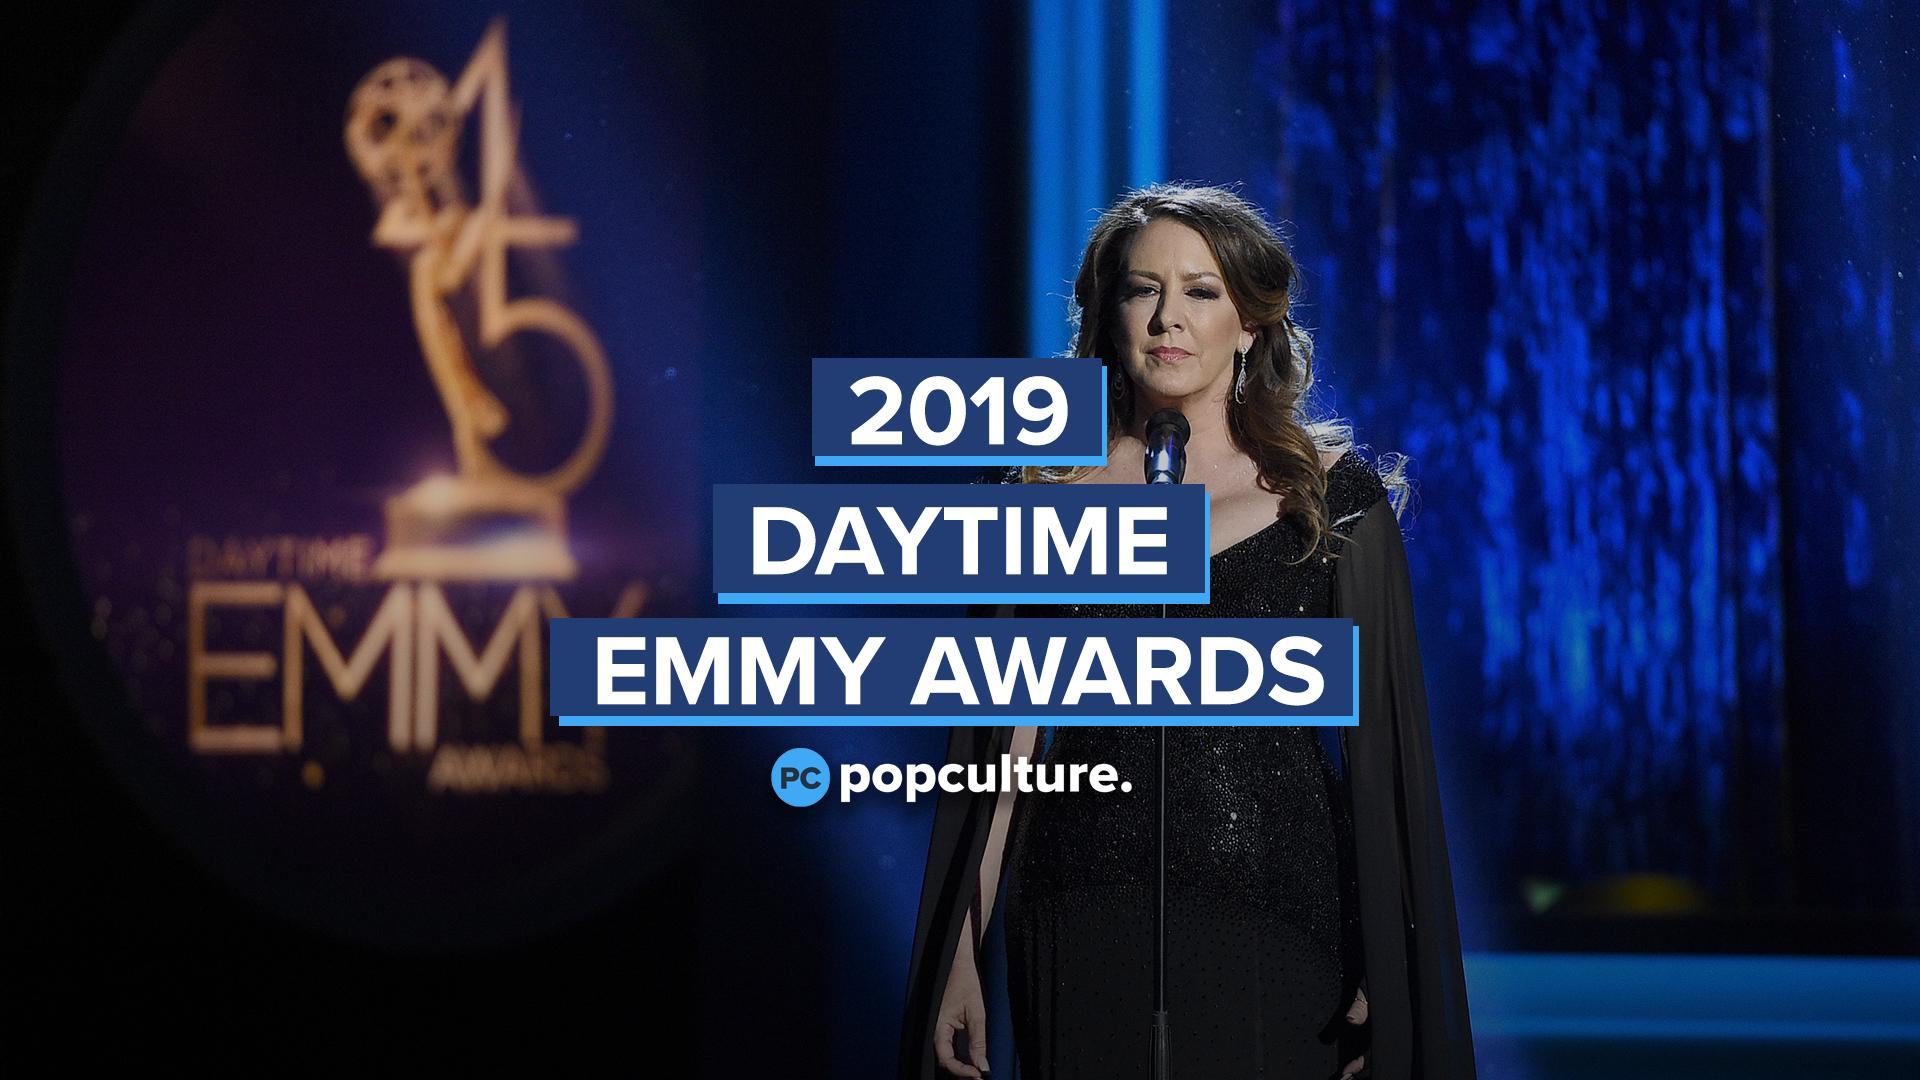 2019 Daytime Emmy's - Everything You Need to Know screen capture